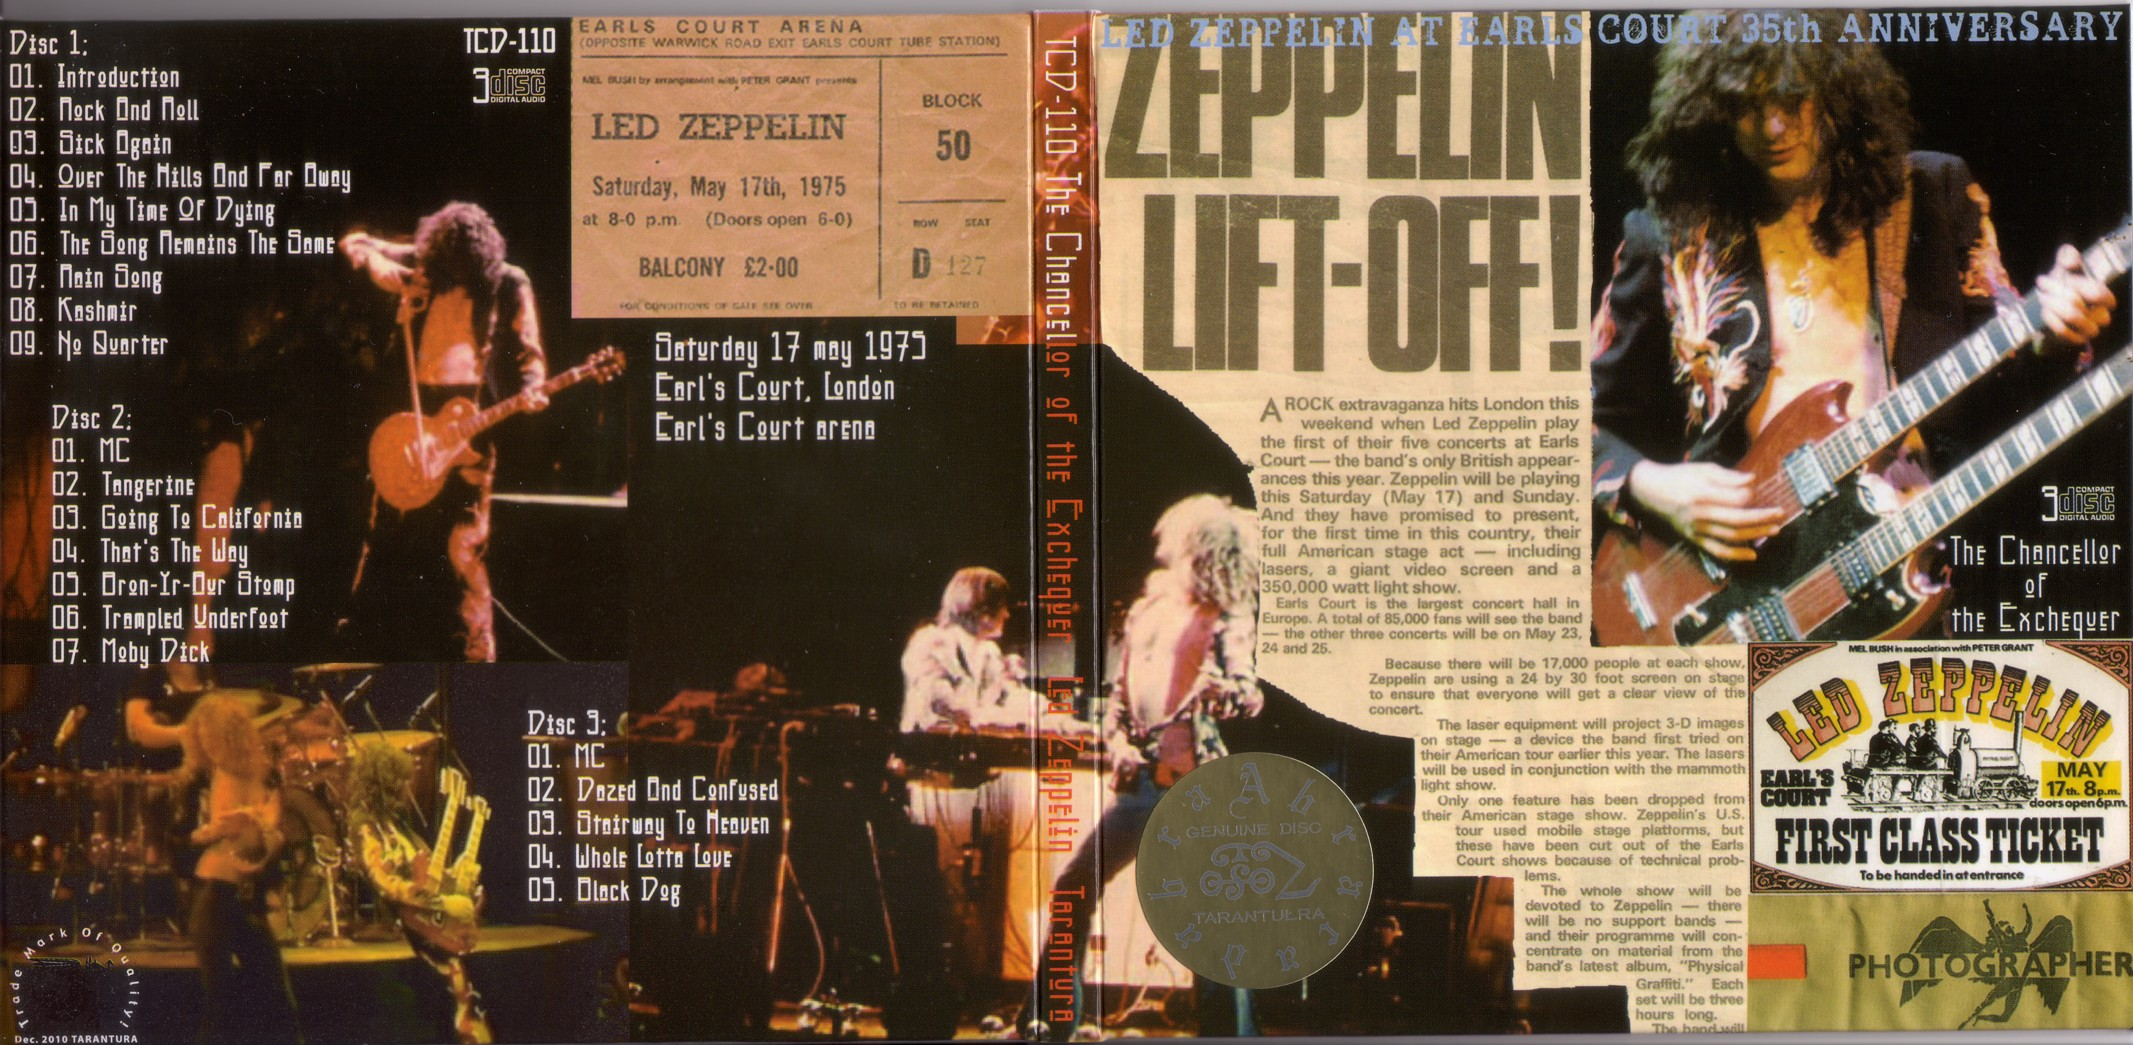 LedZeppelin1975-05-17EarlsCourtLondonUK (4).jpg